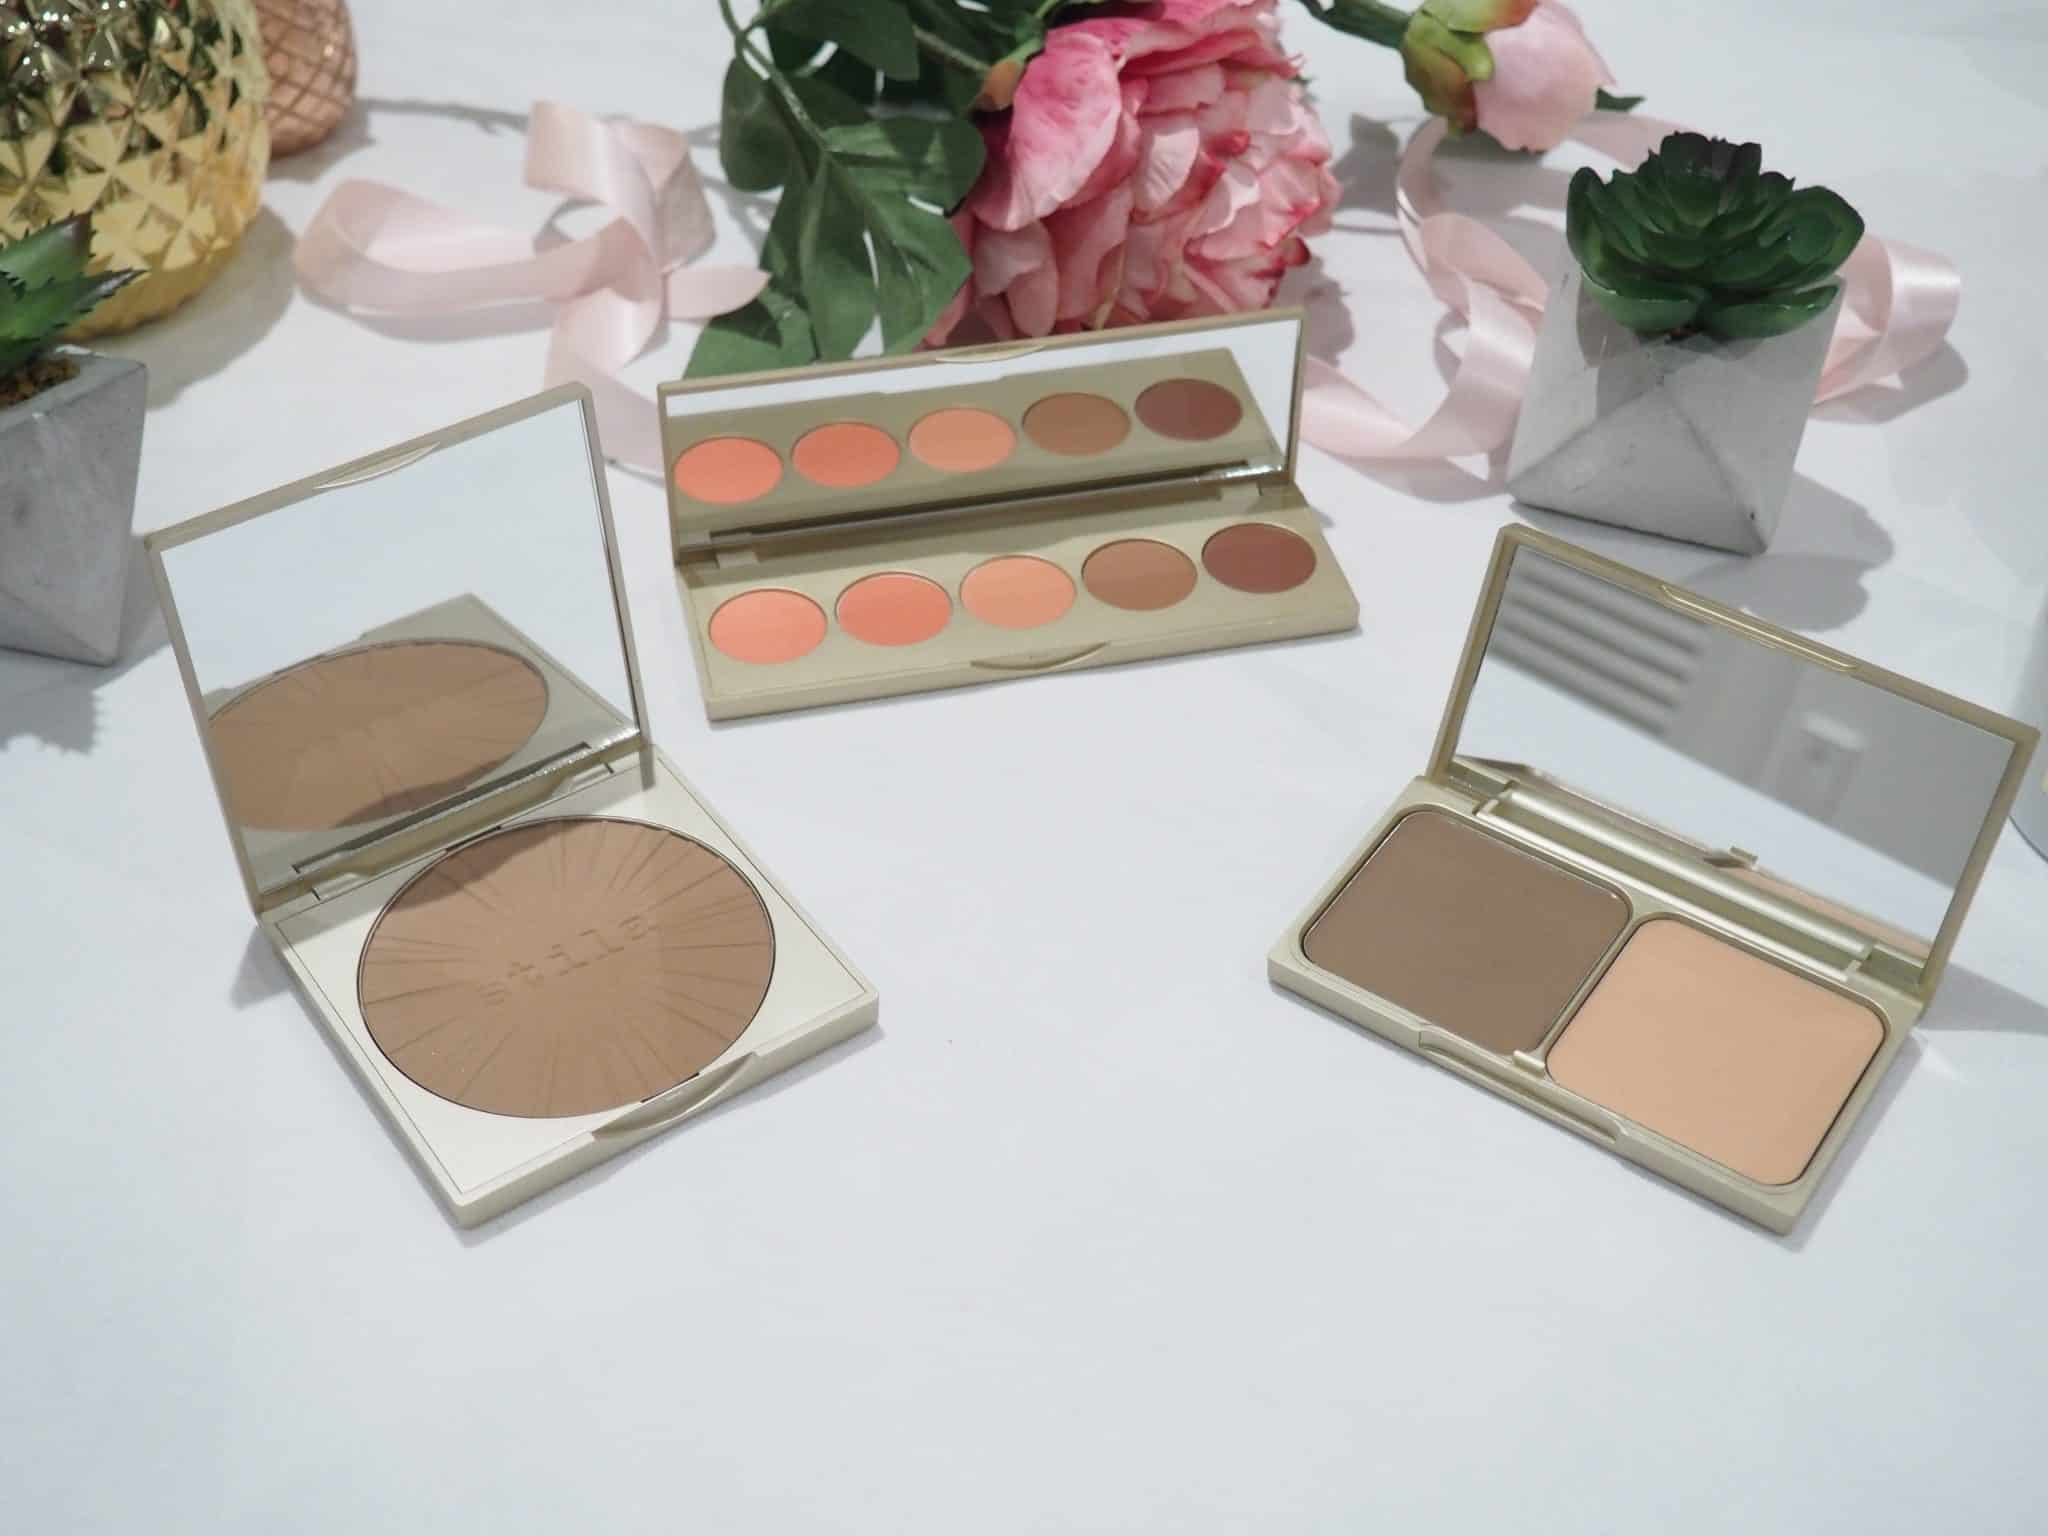 How to Save Time With Stila Cosmetics Multi-Use Palettes